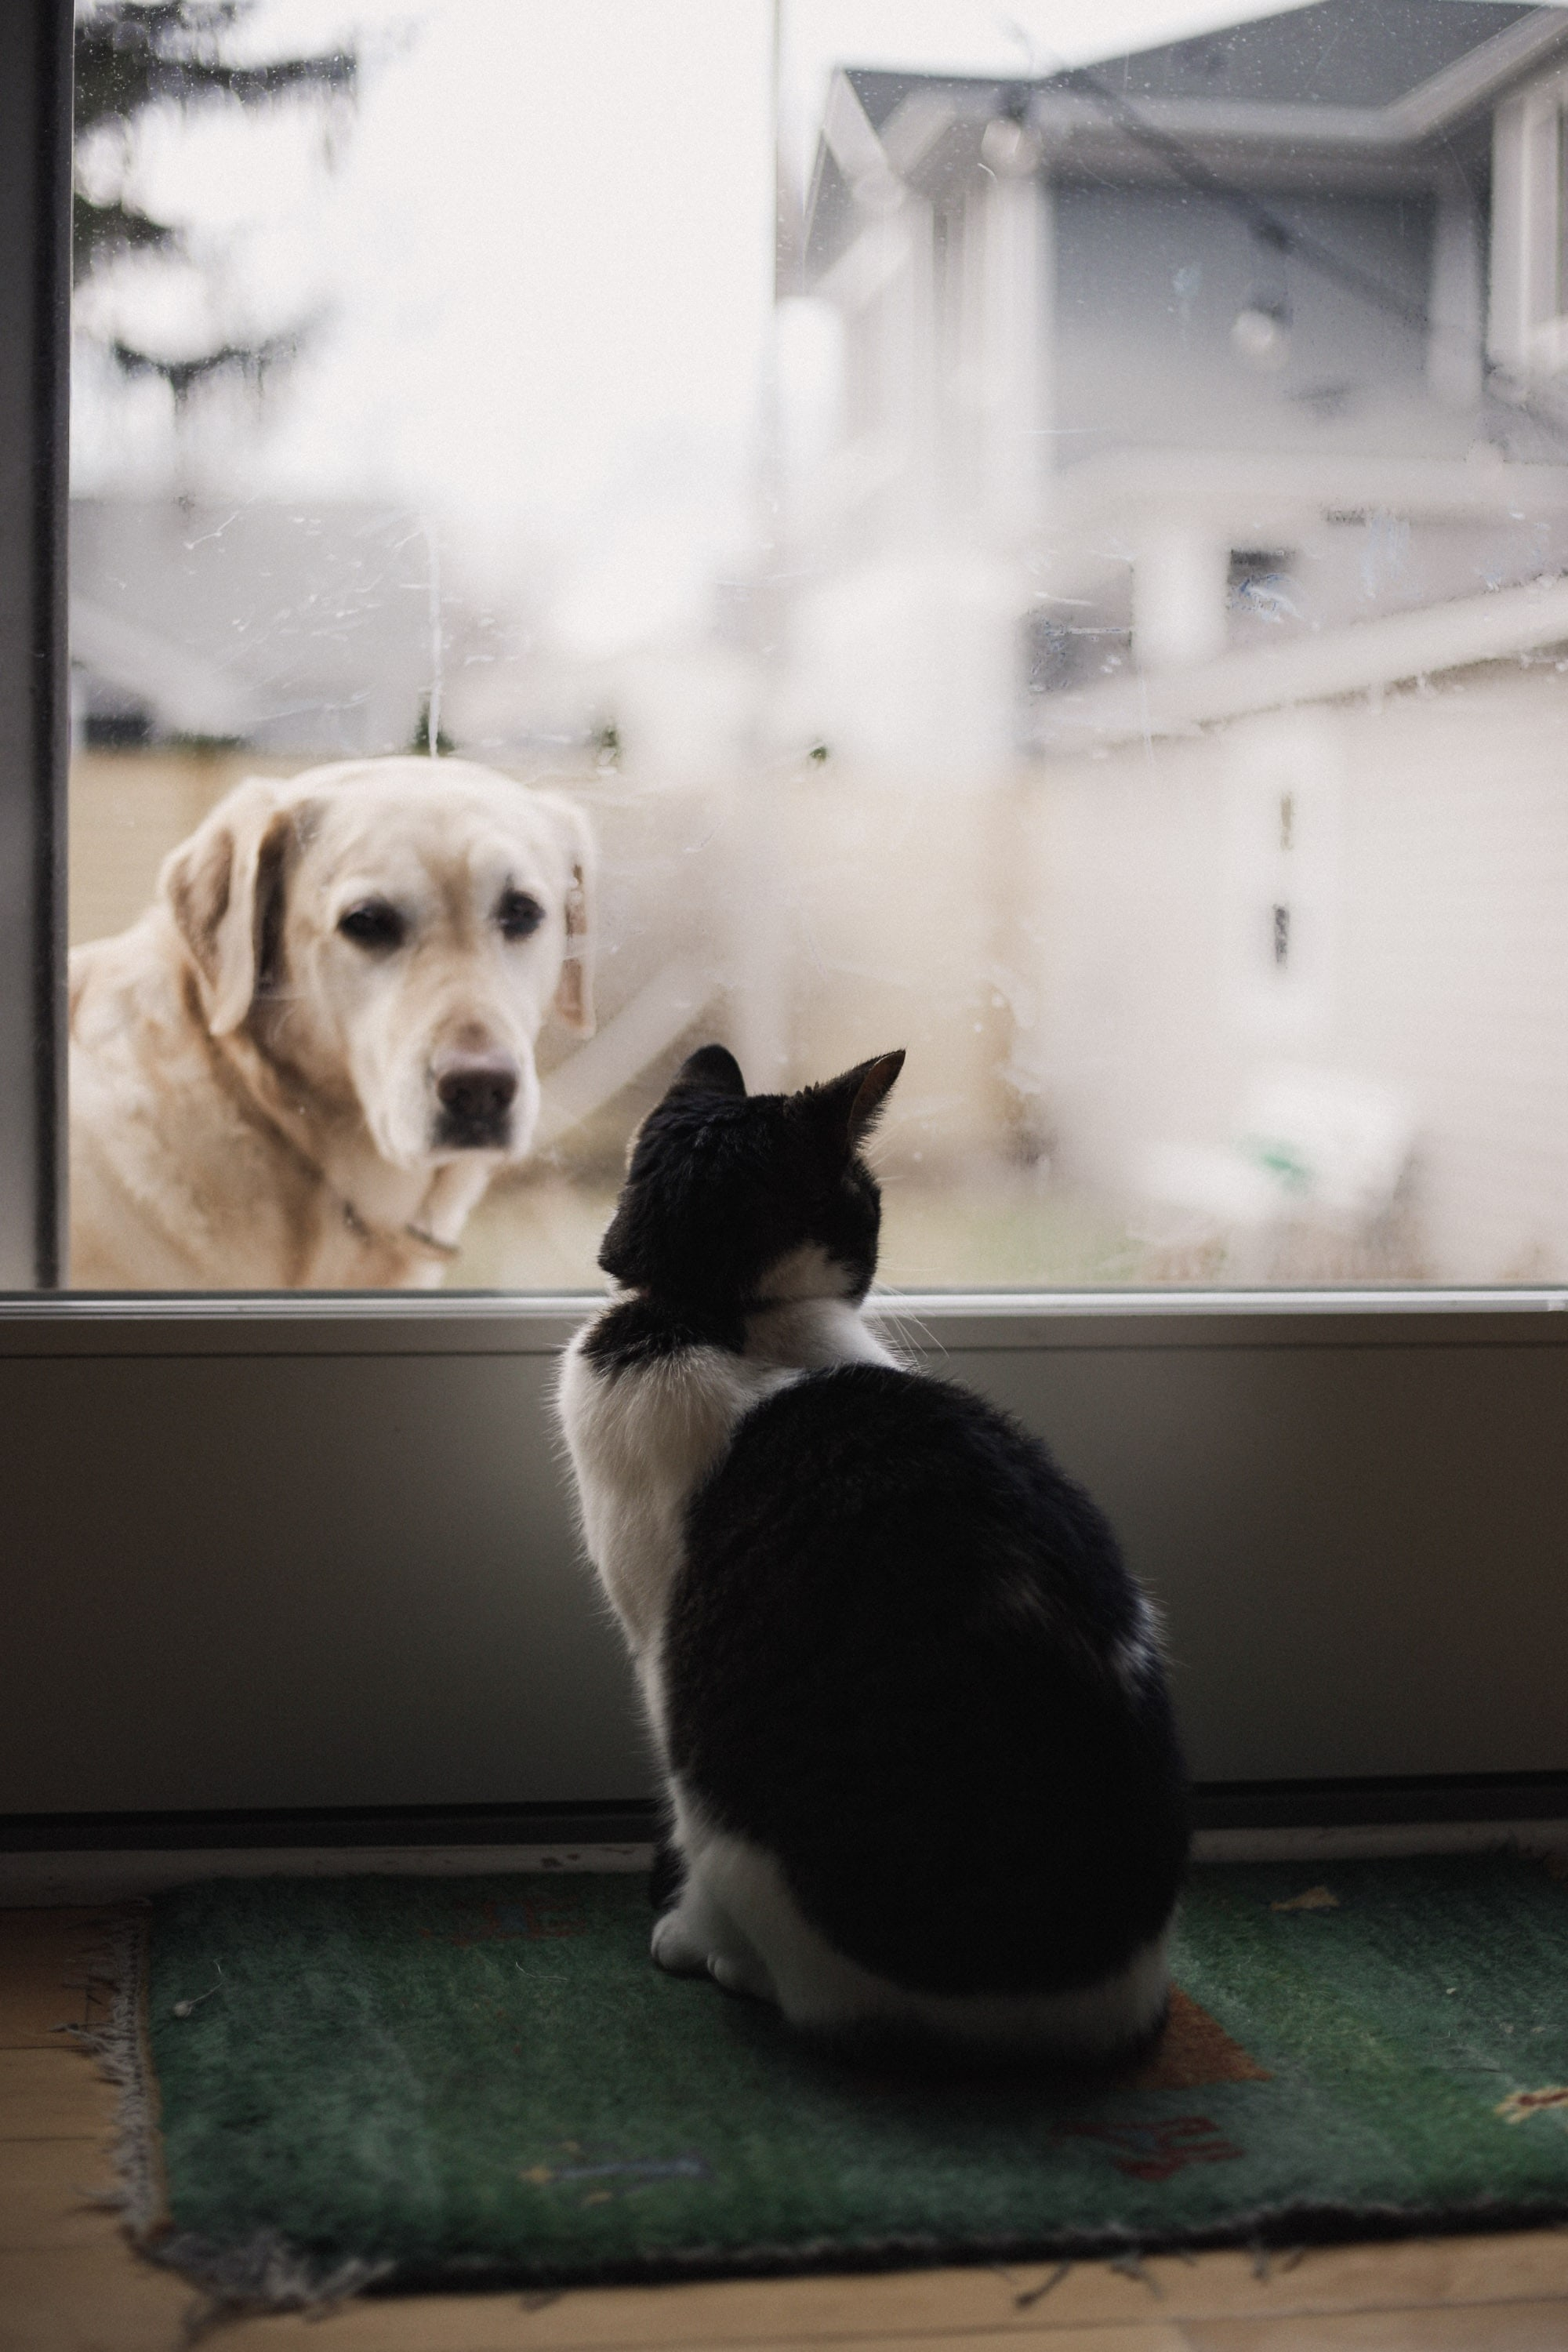 Pets like to explore new homes. Make sure you secure it